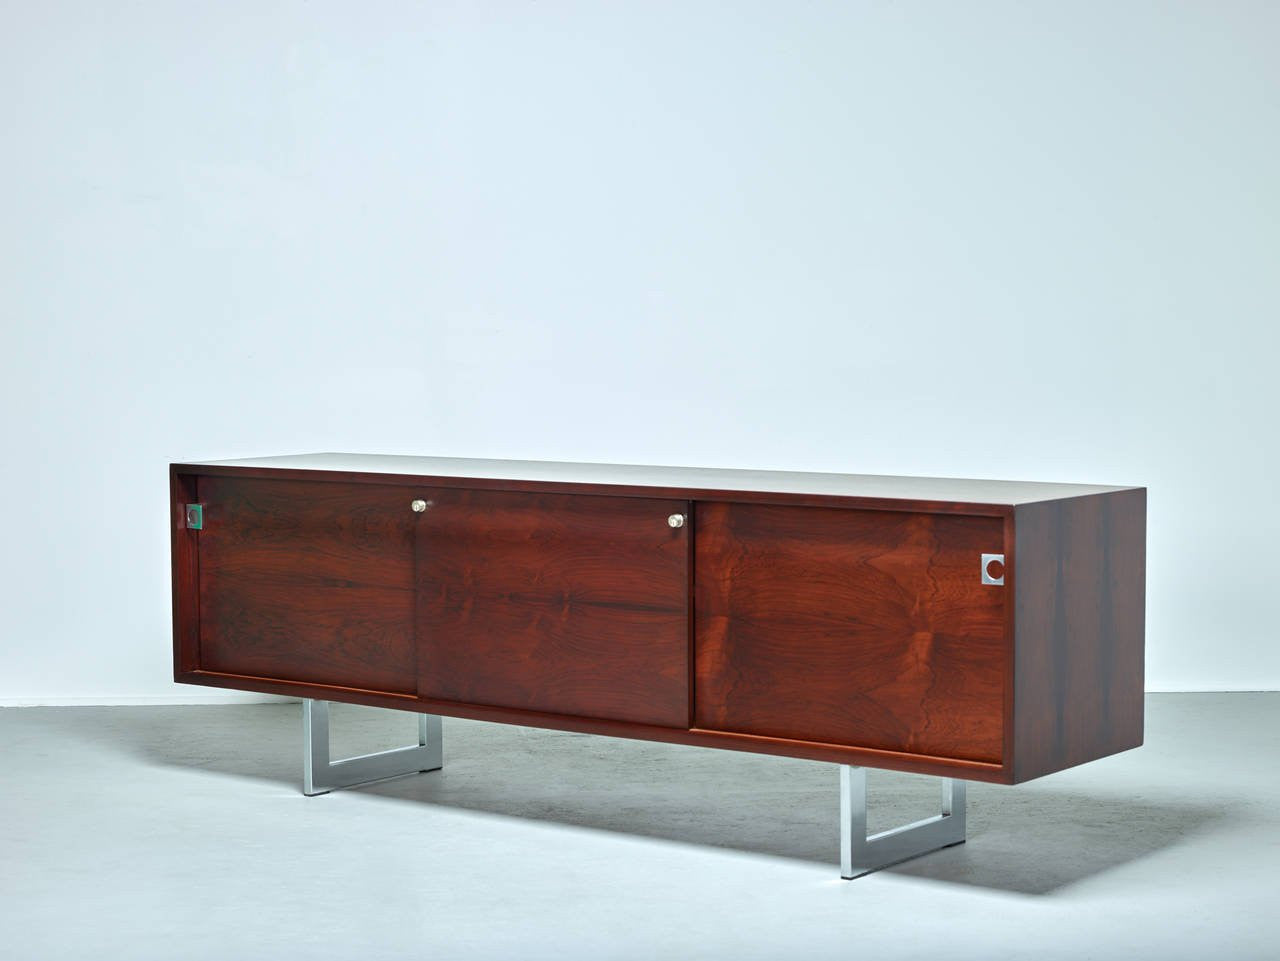 Bodil Kjaer Cabinet for E. Pedersen & Son, 1960 - The Exchange Int